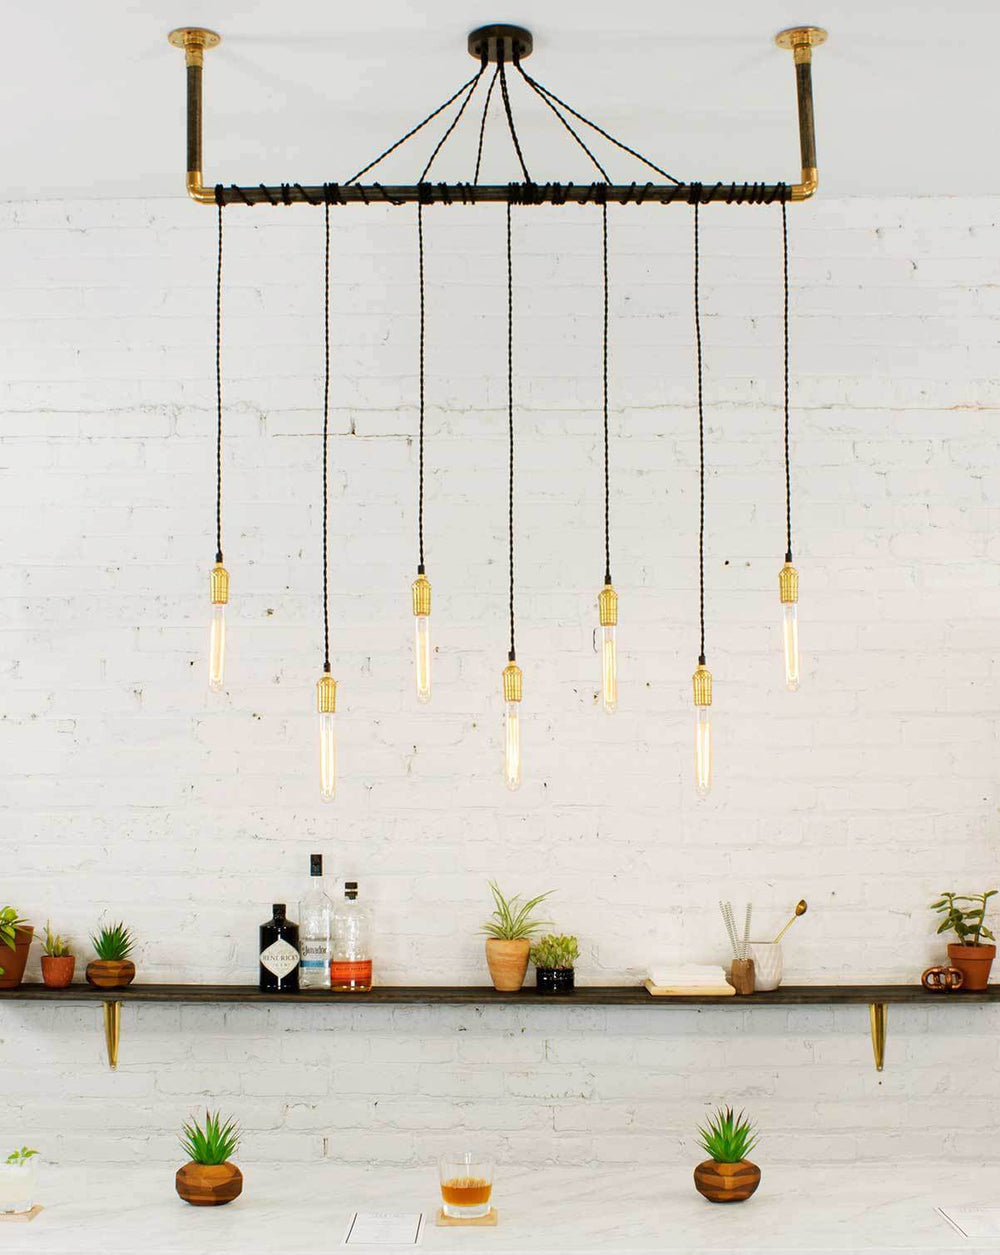 Wrap Chandelier: Design Your Own 7 Pendant Hangout Lighting